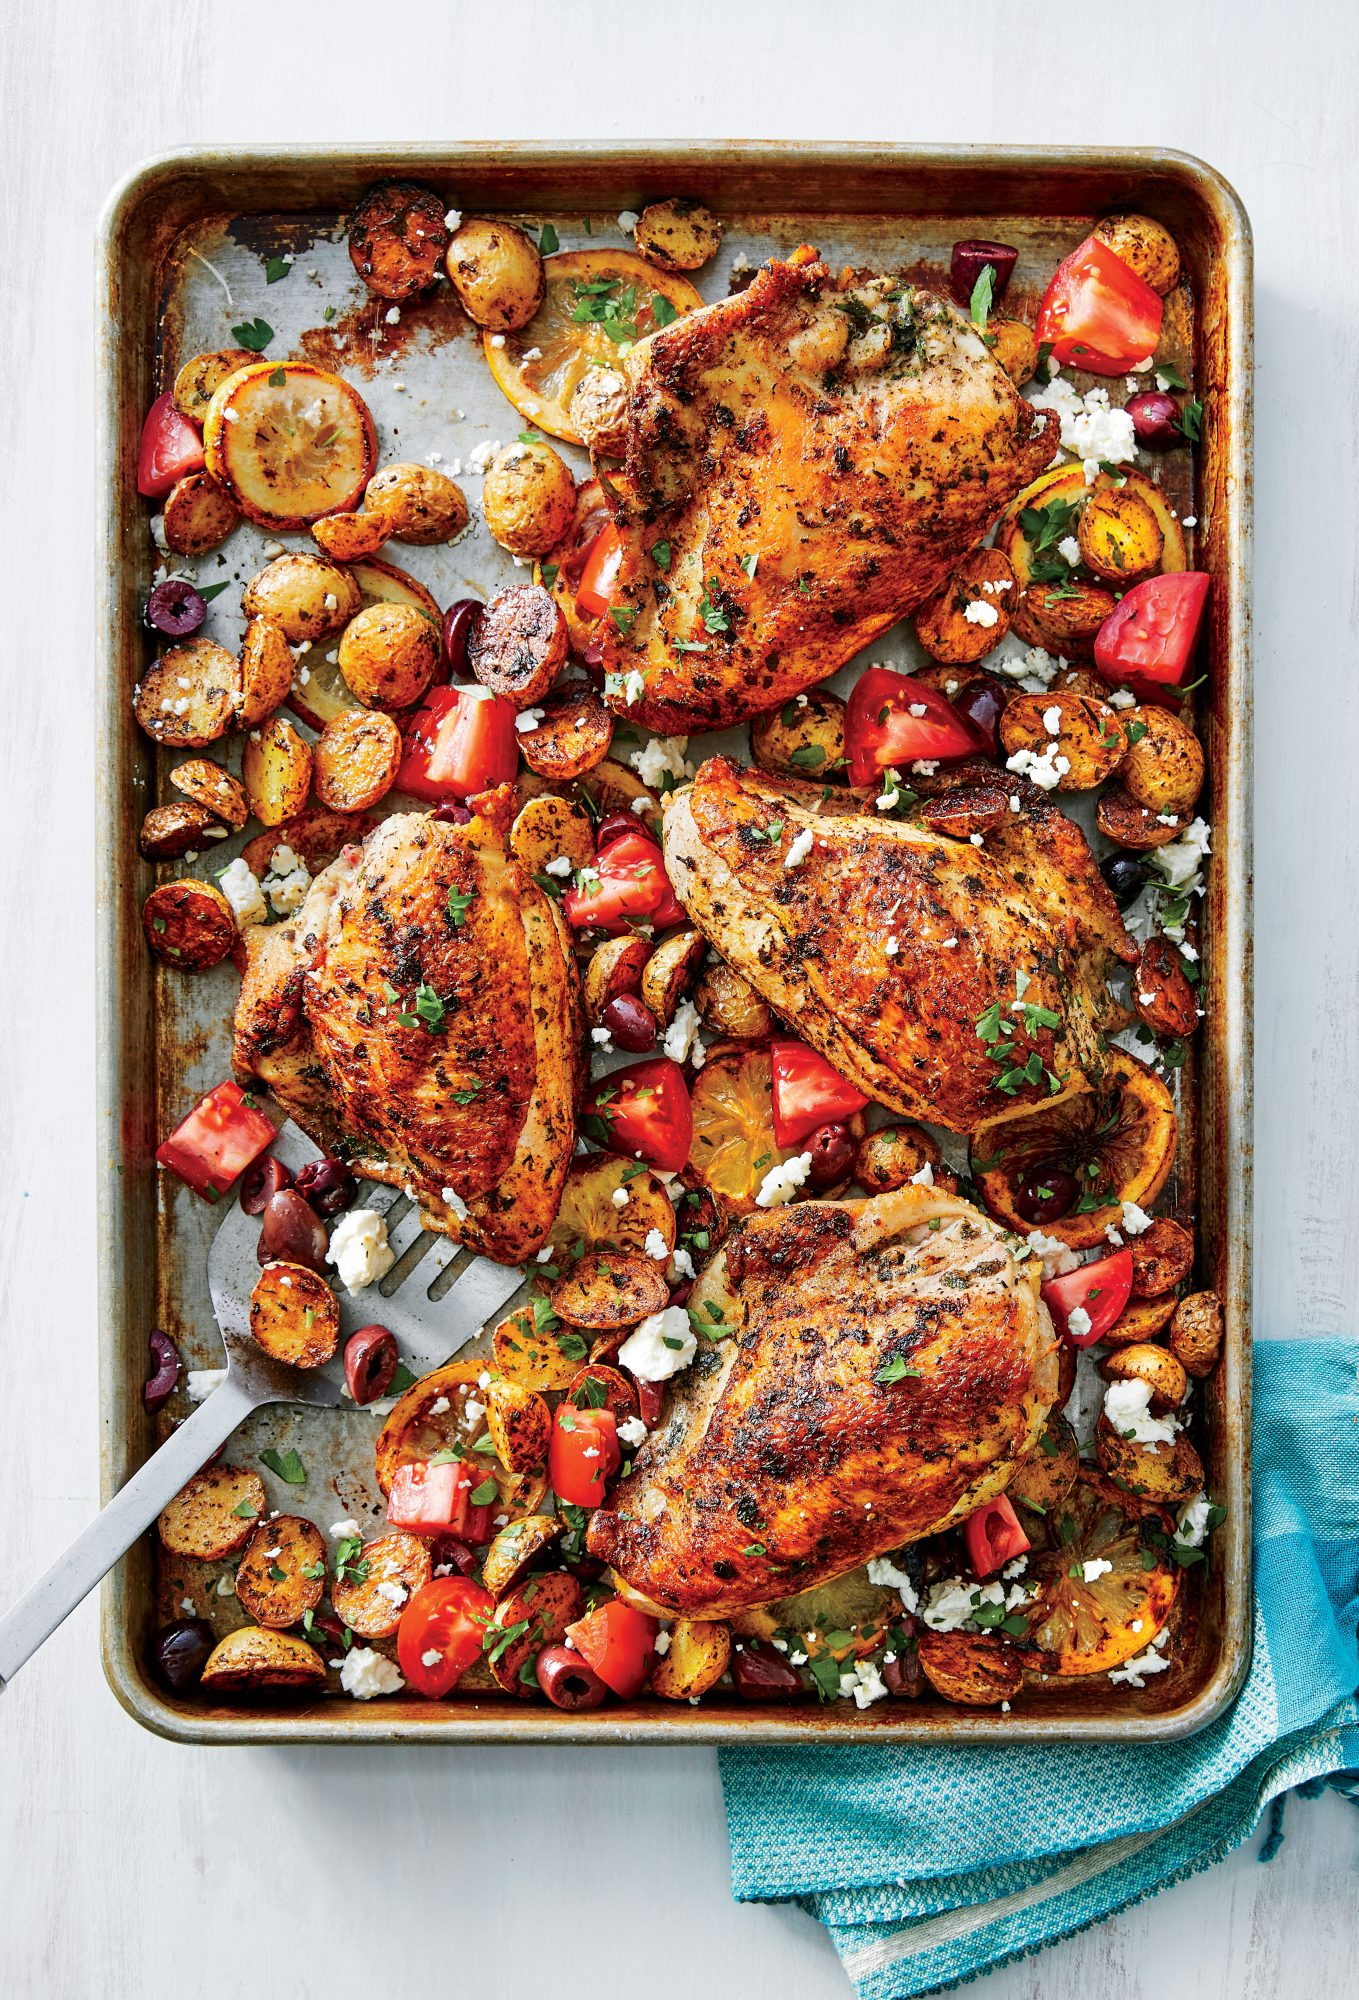 25 Delicious Oven-Baked Chicken Recipes